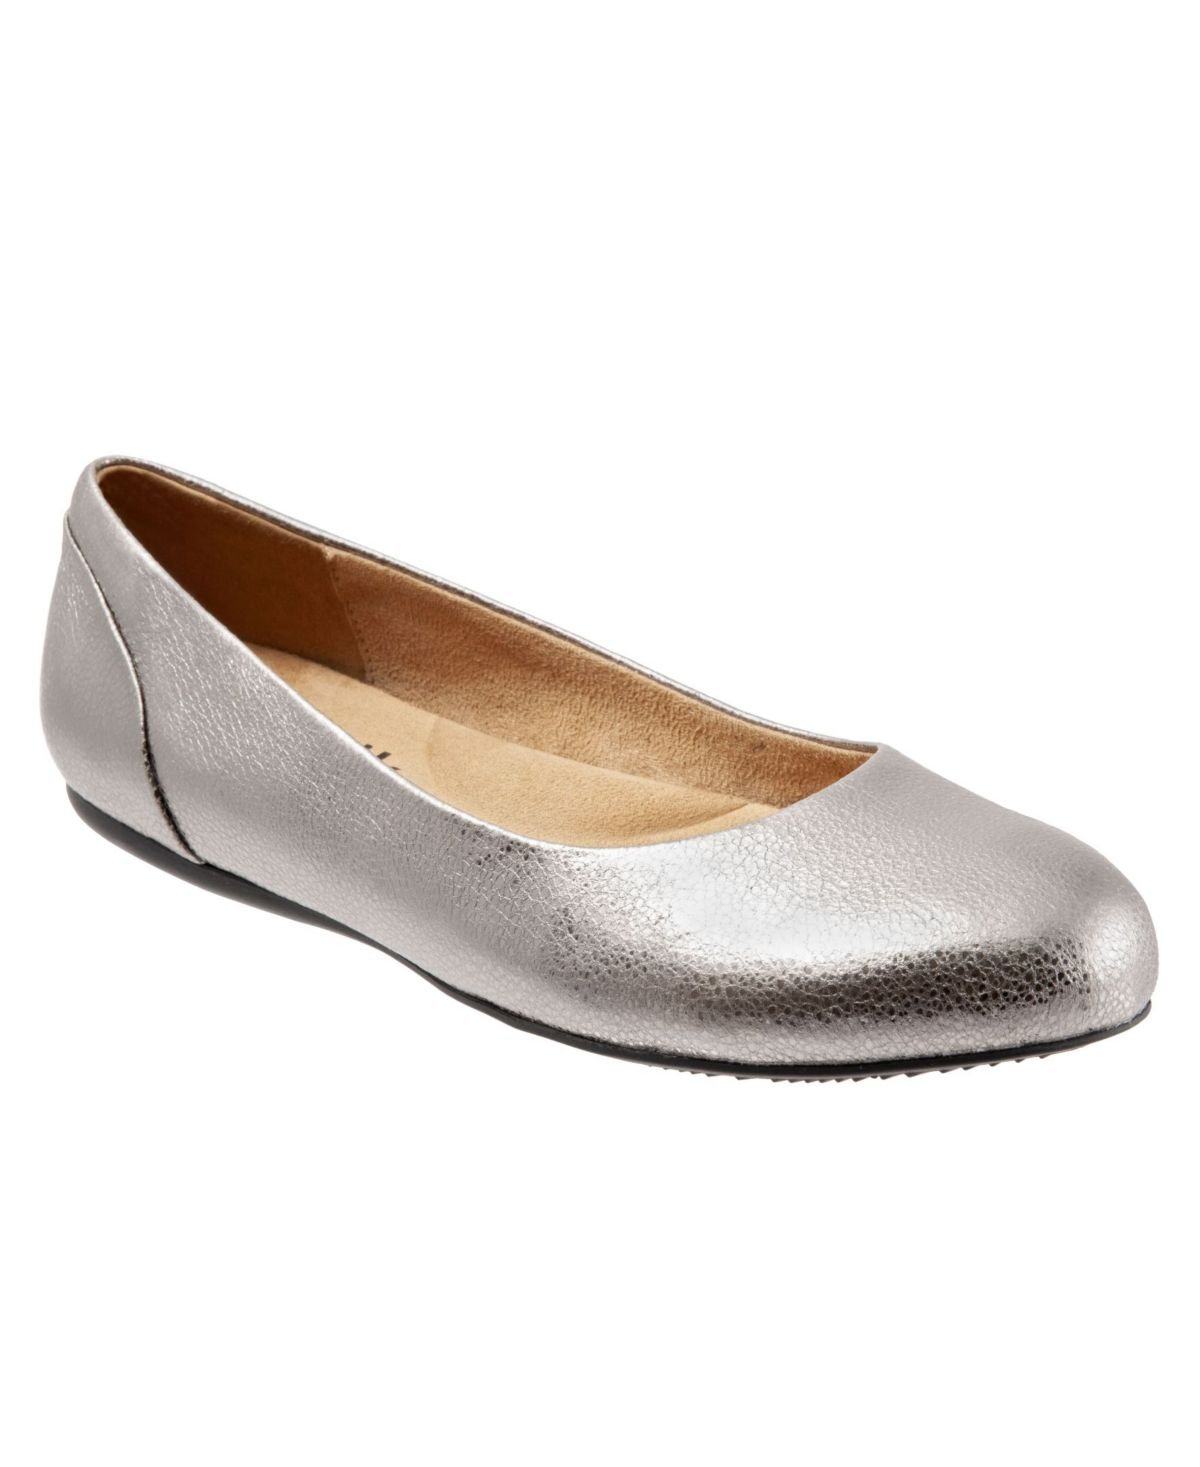 Sonoma is a rounded-toe ballet flat built for serious comfort. This every-day flat has a contoured silhouette and removable foot bed for a stylish and comfortable look.